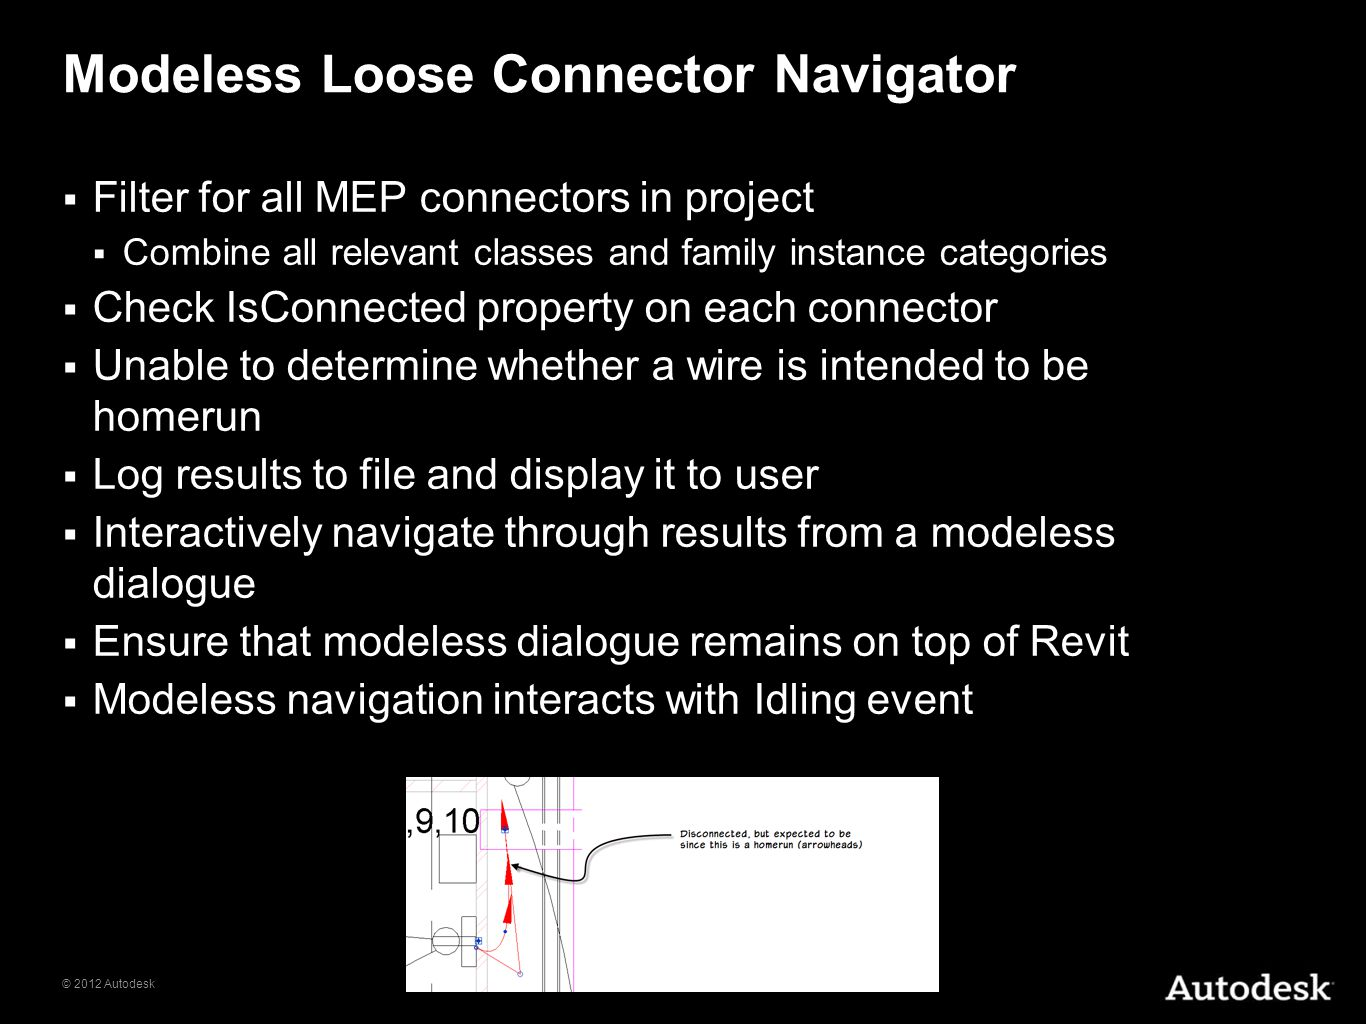 Modeless Loose Connector Navigator